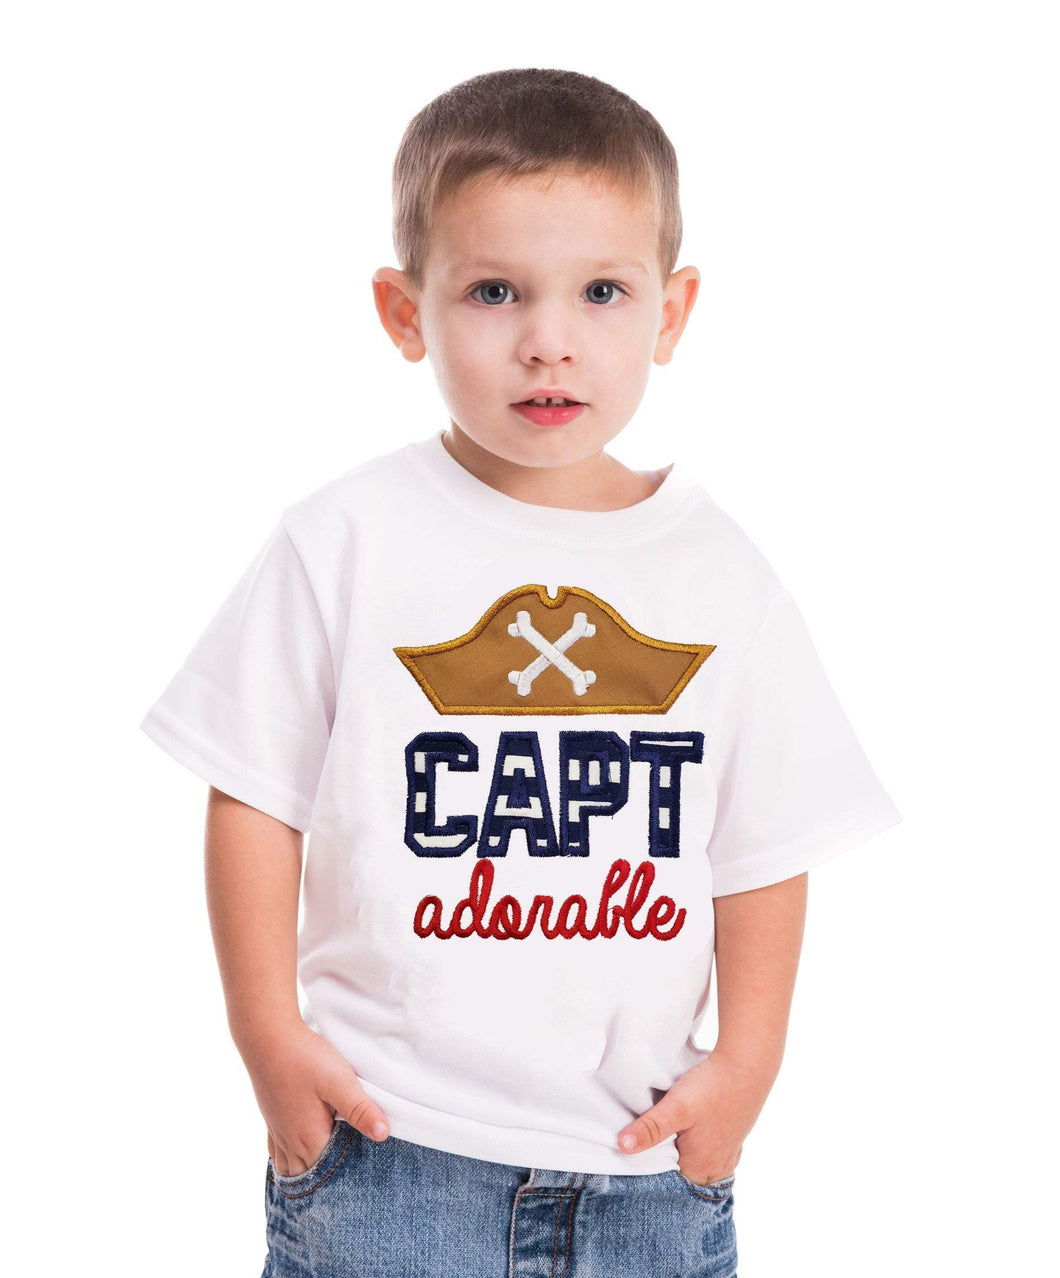 Pirate Boys shirt Cap Adorable pirate shirt  Boys birthday shirt